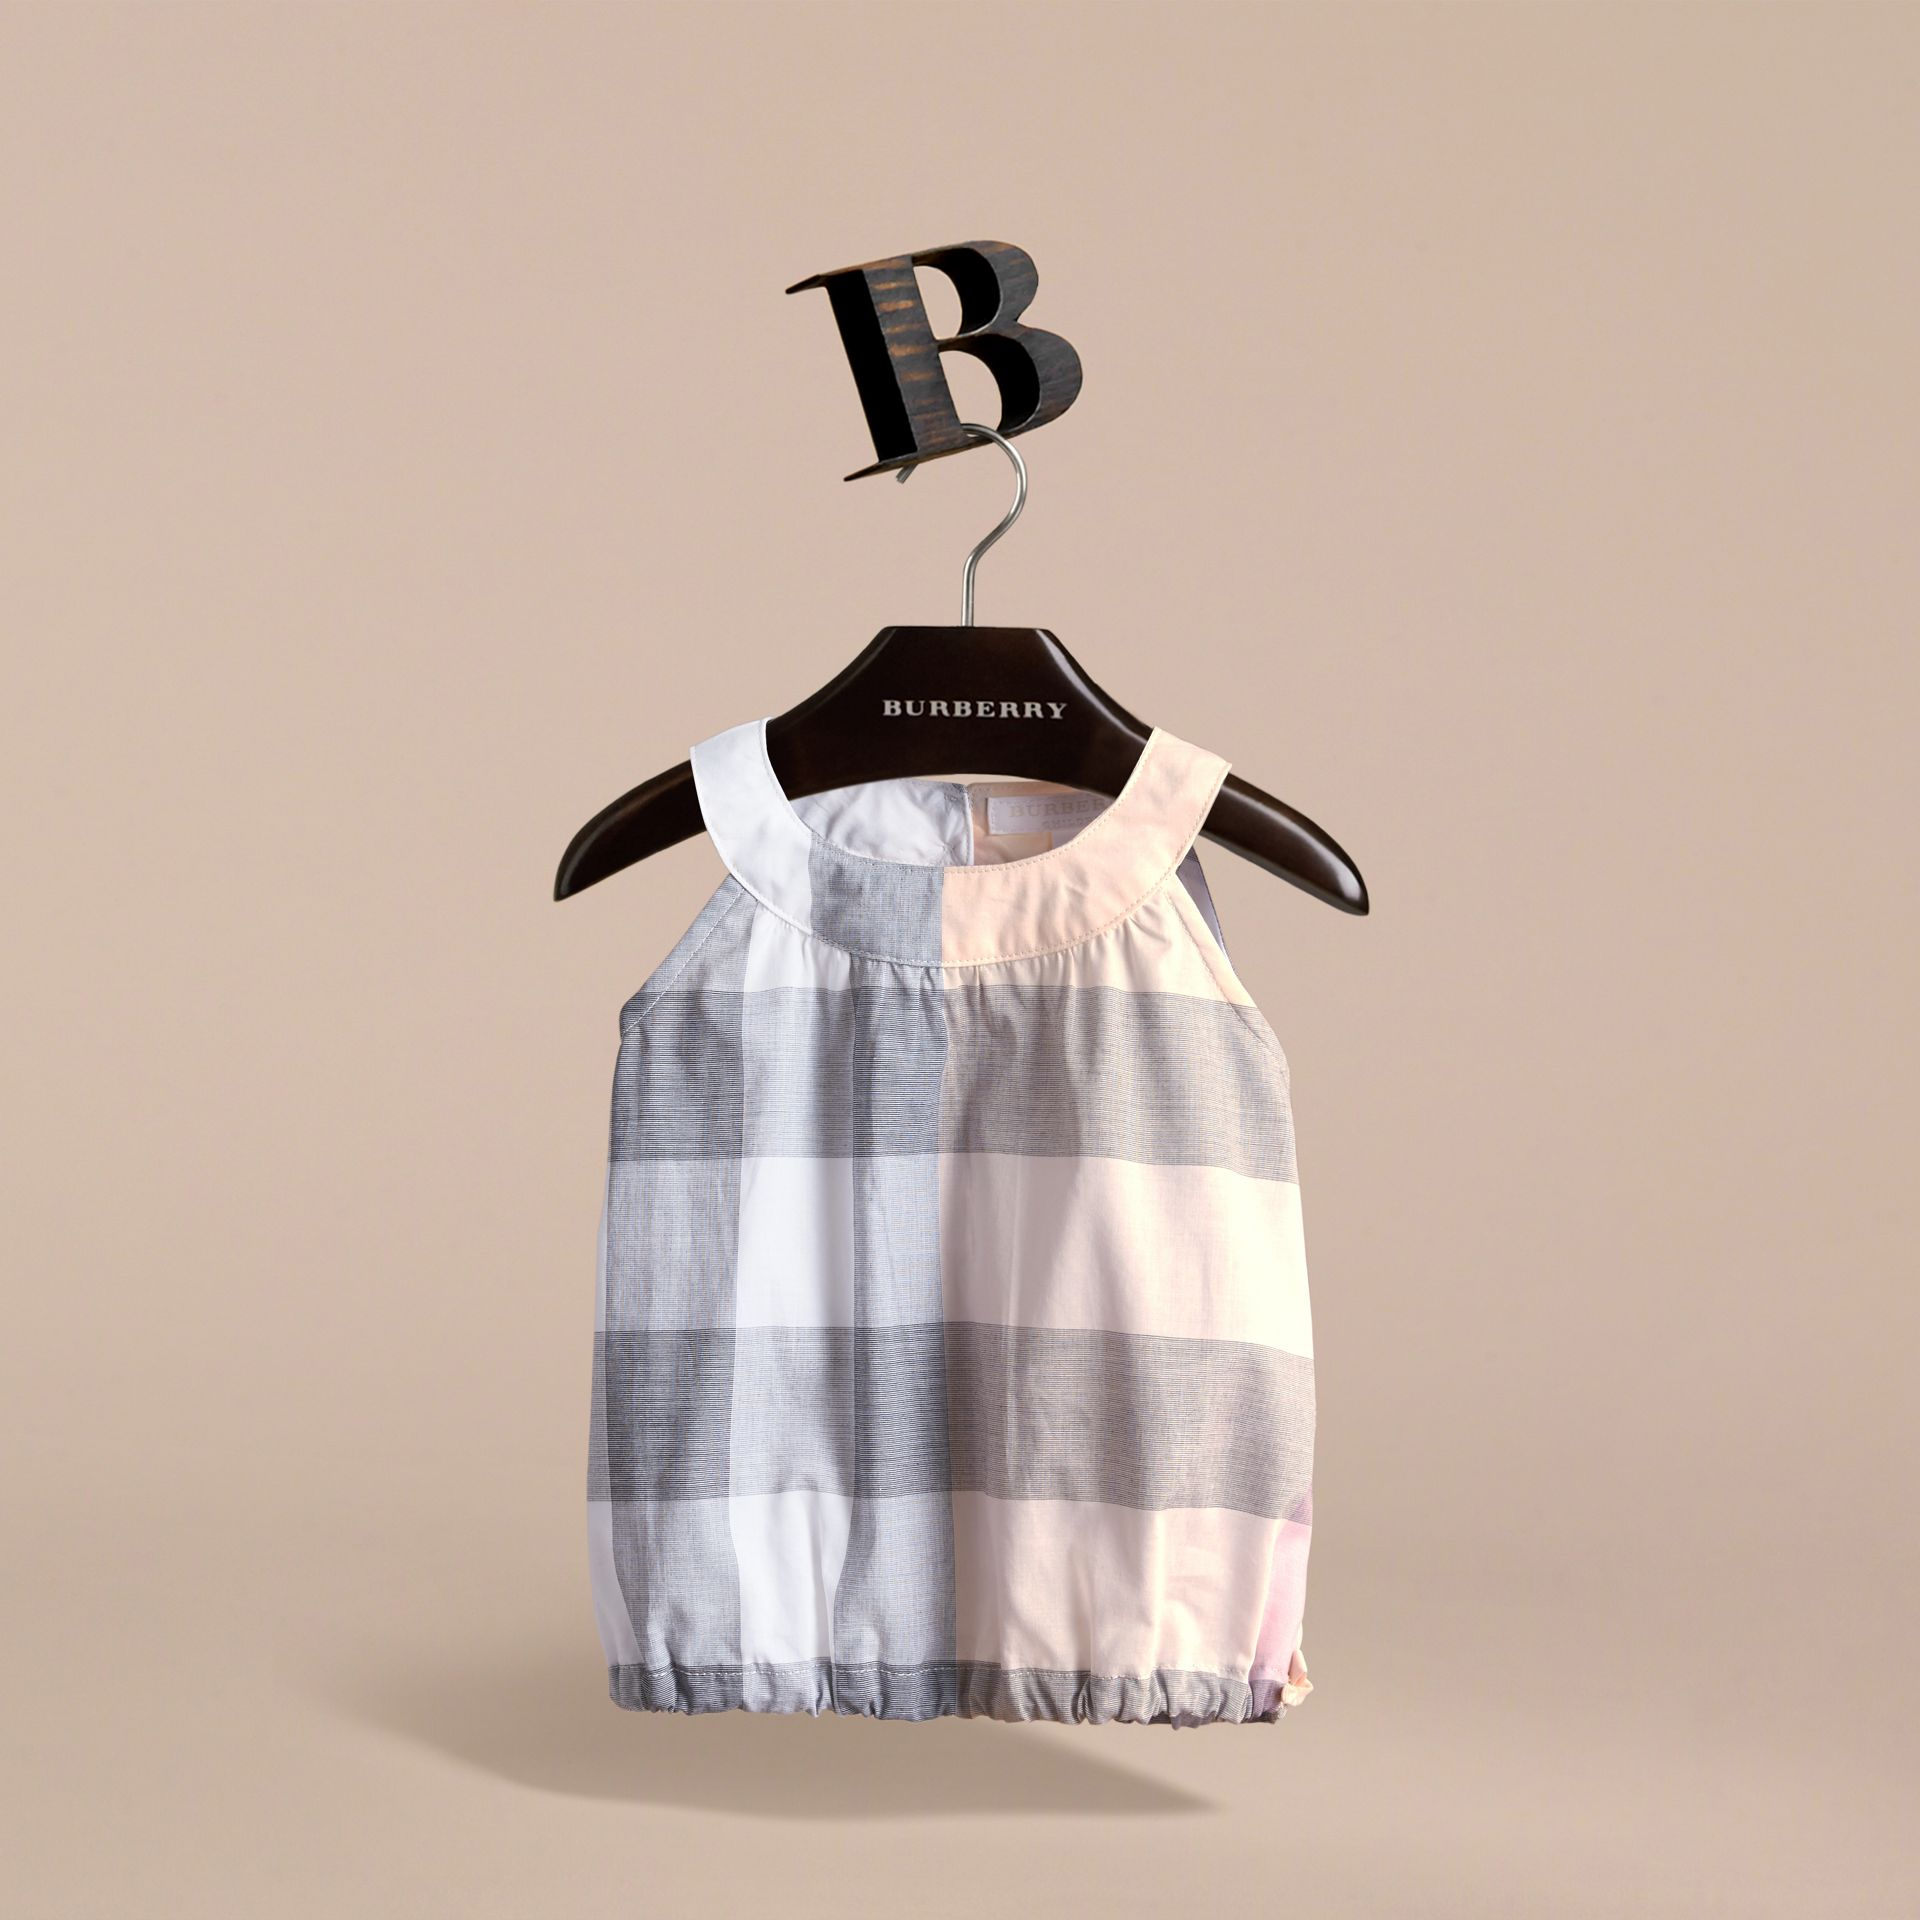 Gathered Check Cotton Top in Apricot | Burberry - gallery image 2